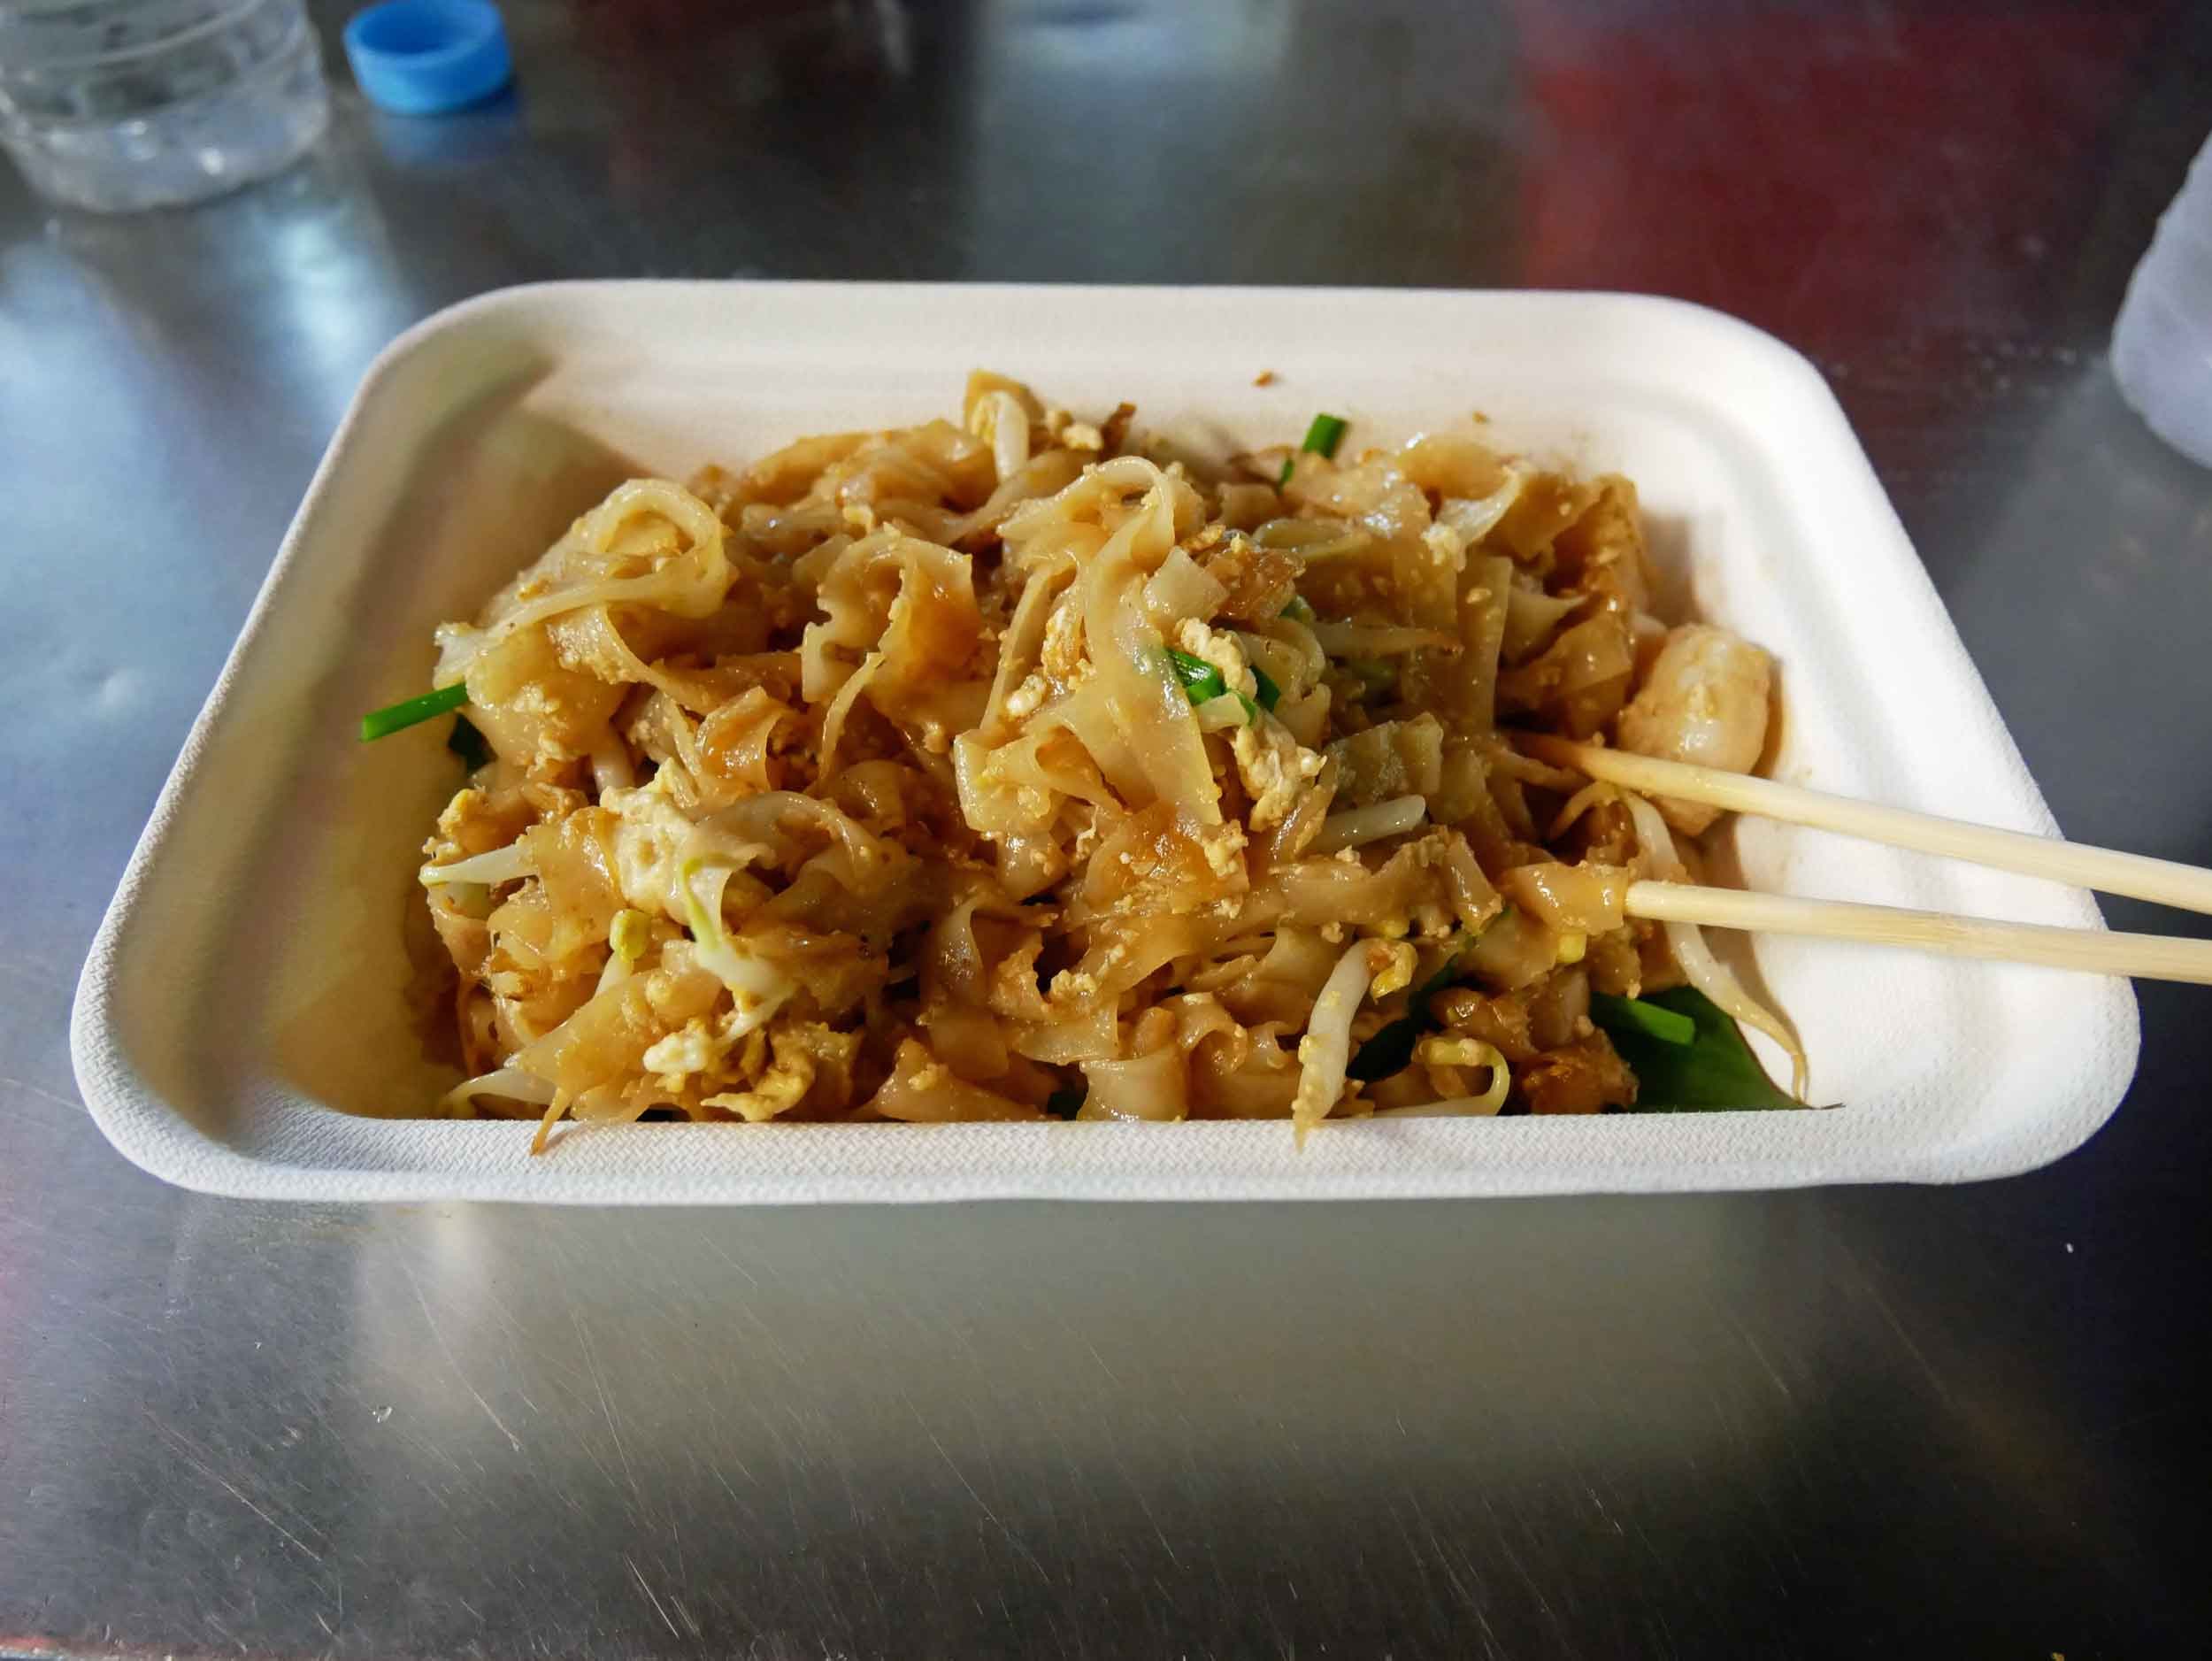 A dish of Gurney's  char kway teow , a Pad Thai-like dish of rice noodles fried with shrimp, green onions, sprouts and egg in a wok.